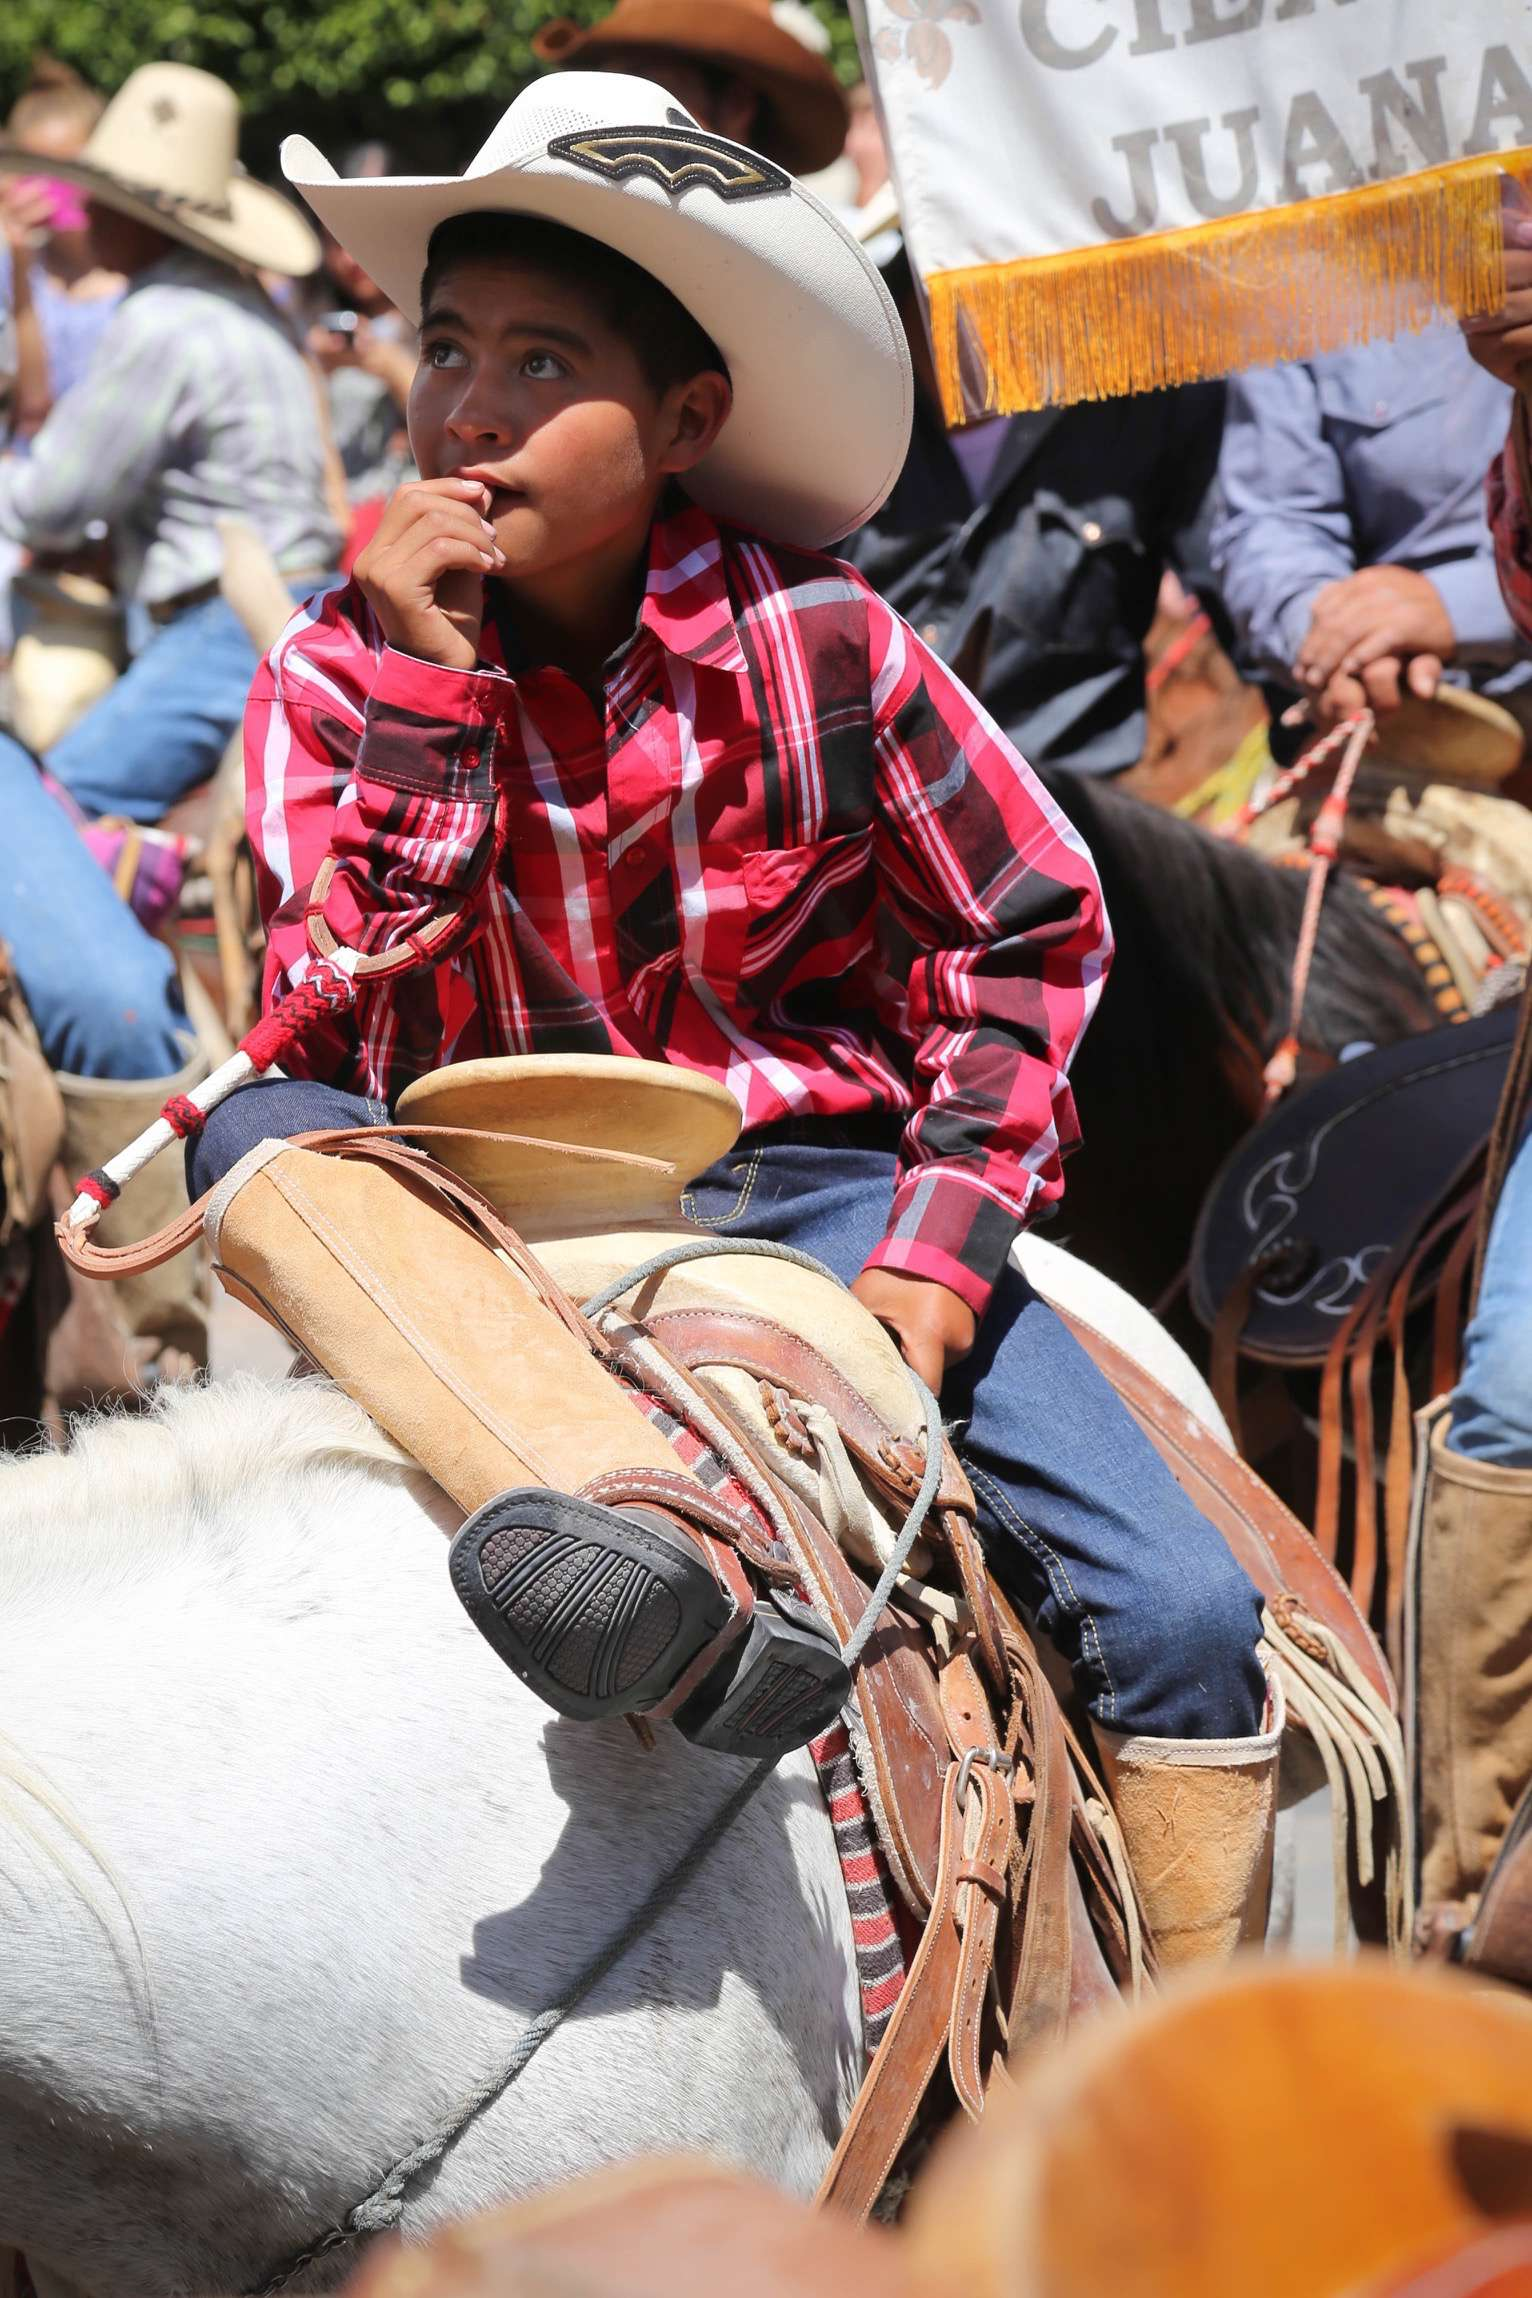 A young rider listens during the mass in the square at San Miguel de Allende.